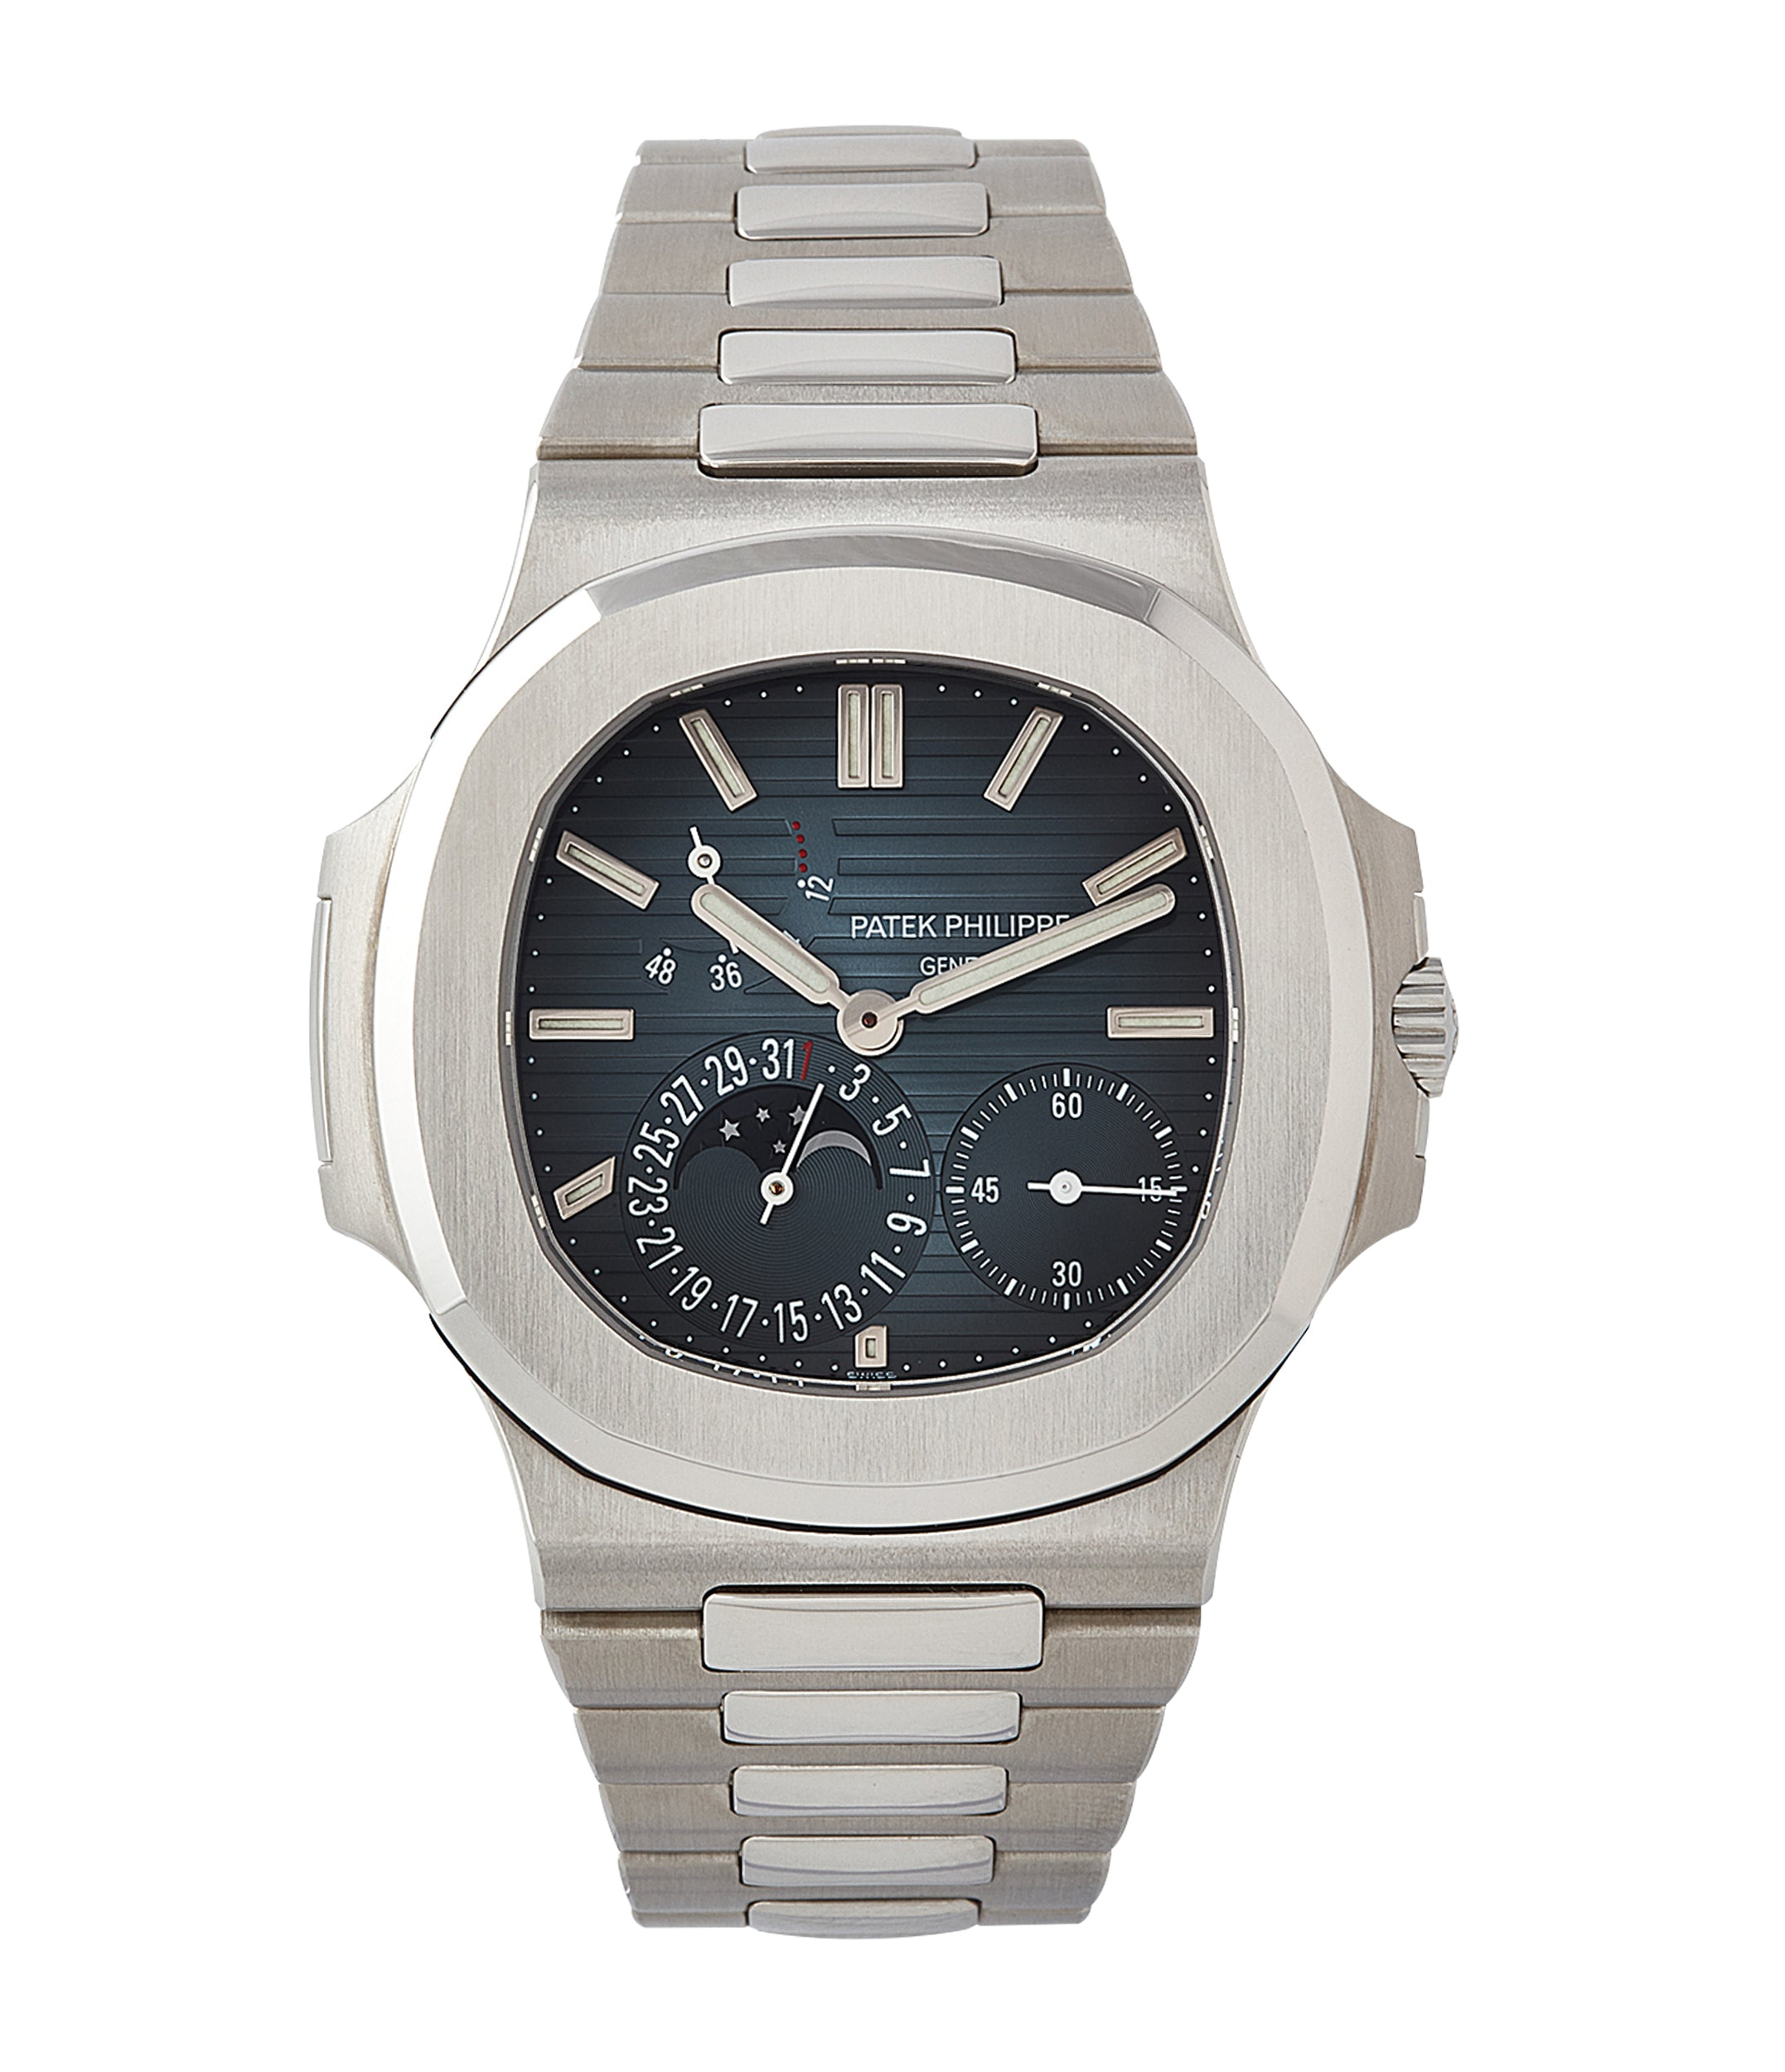 buy Patek Philippe Nautilus Moon Phase 5712/1A-001 steel pre-owned watch for sale online at A Collected Man London UK specialist of rare watches